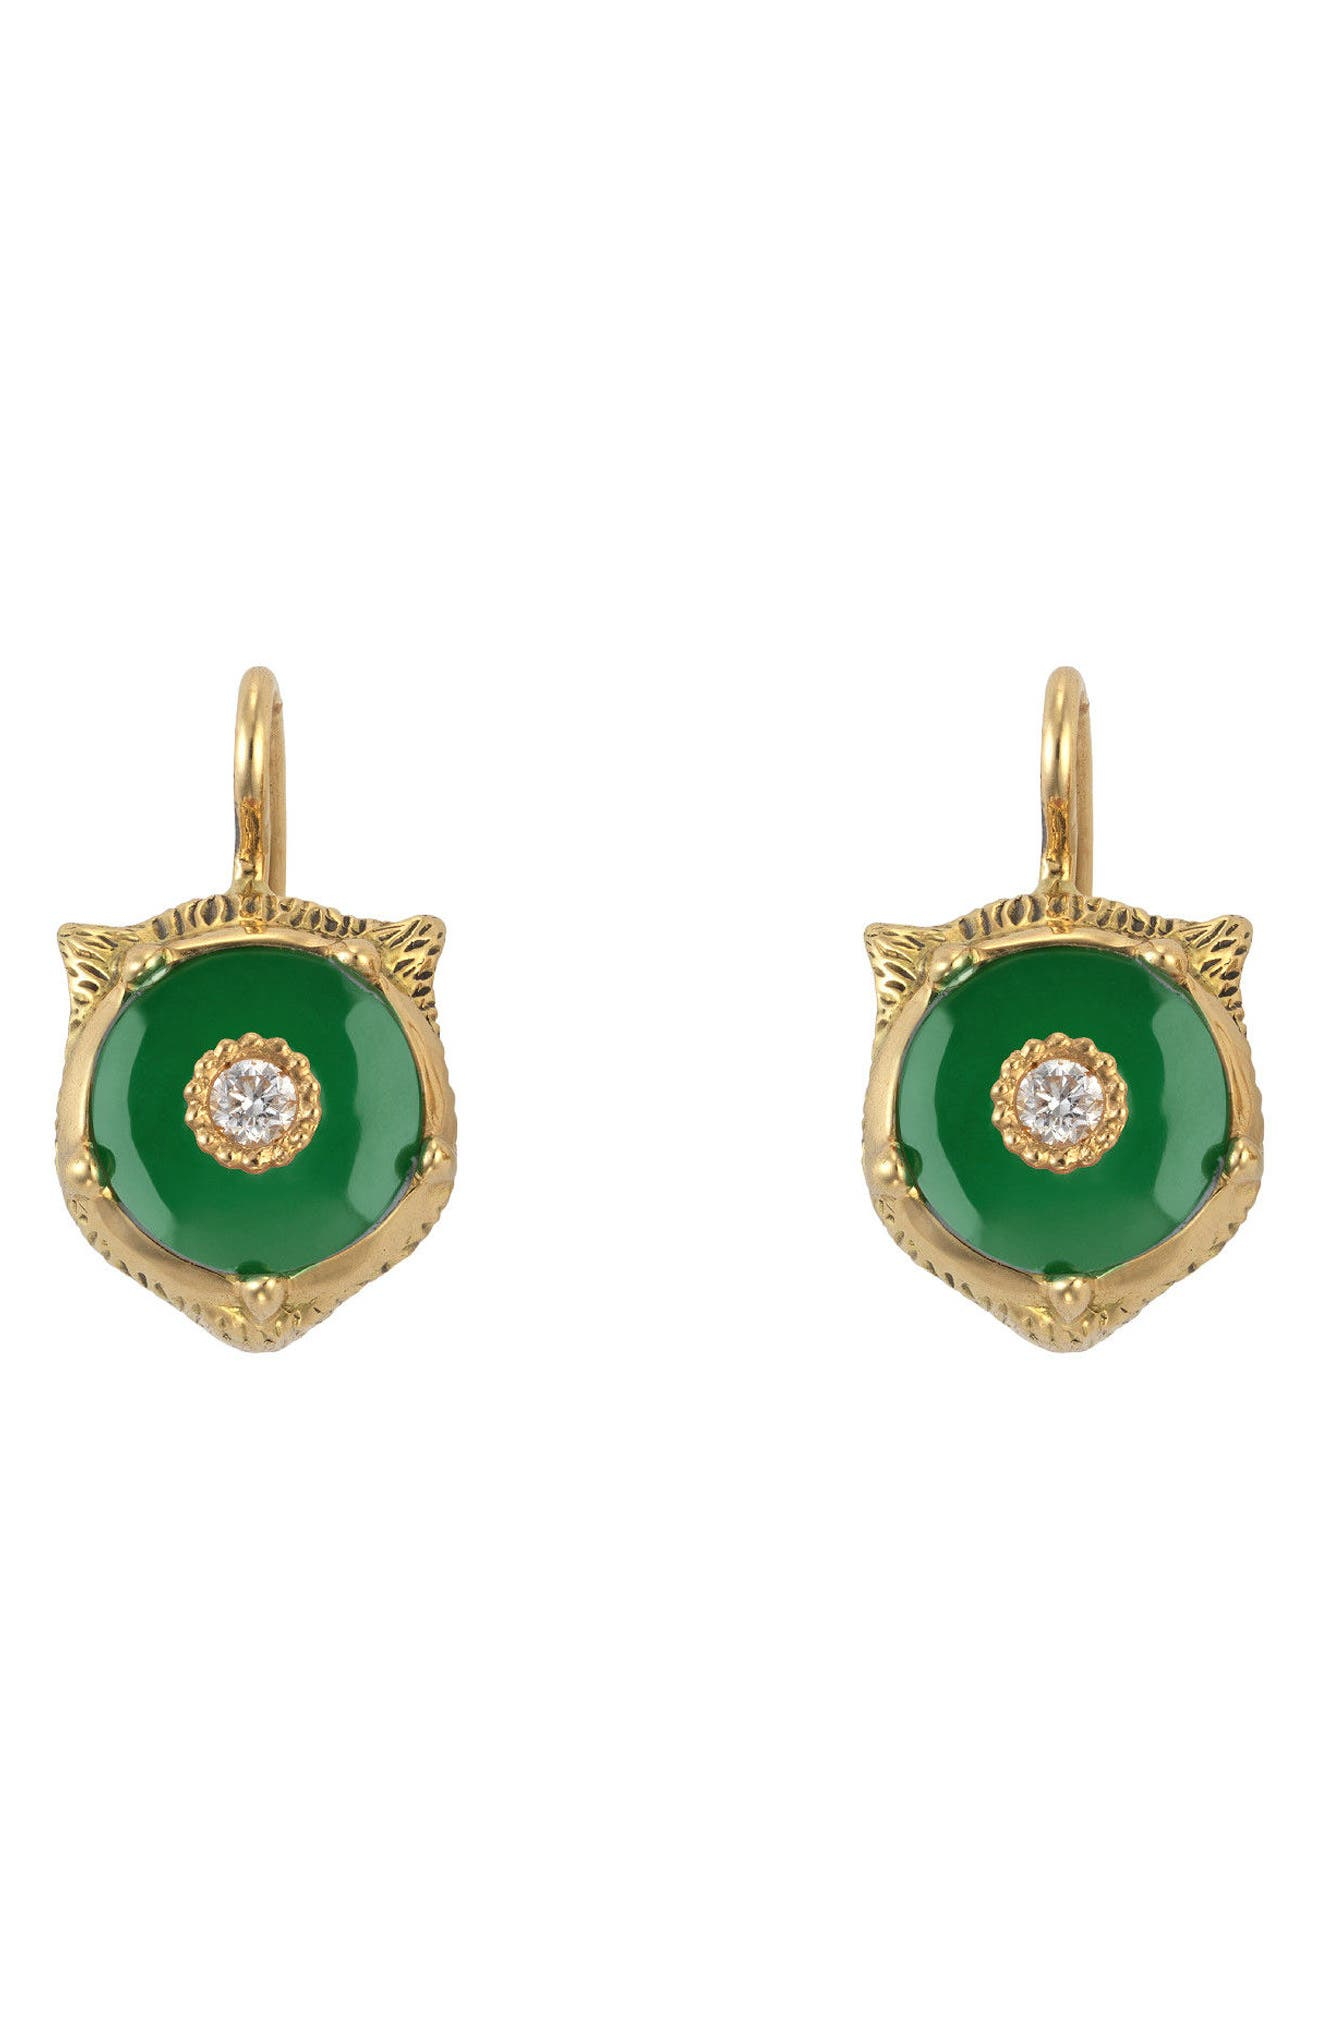 Feline Head Earrings,                         Main,                         color, YELLOW GOLD/ GREEN JADE